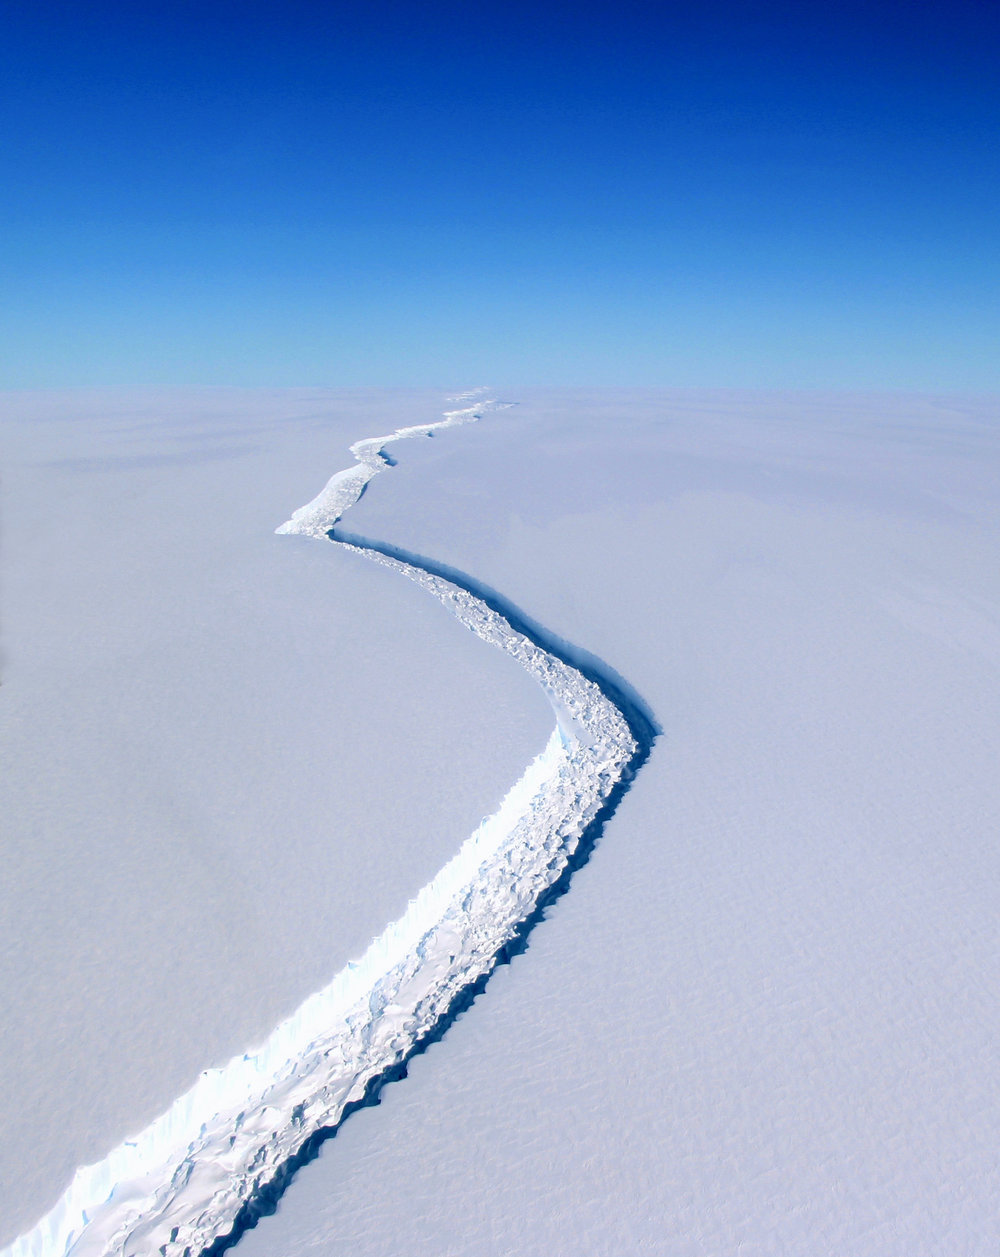 A newly formed crack in the Larsen Ice Shelf in Antarctica extends as far as the eye can see. The fracture is currently measured at 100 feet wide and over 100 miles long, growing more than 50 miles alone since 2011. If this chunk of ice breaks away, roughly 2,000 square miles will be lost - that's roughly the size of the state of Delaware. The break is the latest example of major ice loss in the fast warming Antarctic Peninsula and could lead to a rise in global sea levels by roughly four inches (10 centimeters).  Photo taken from airplane by John Sonntag for NASA